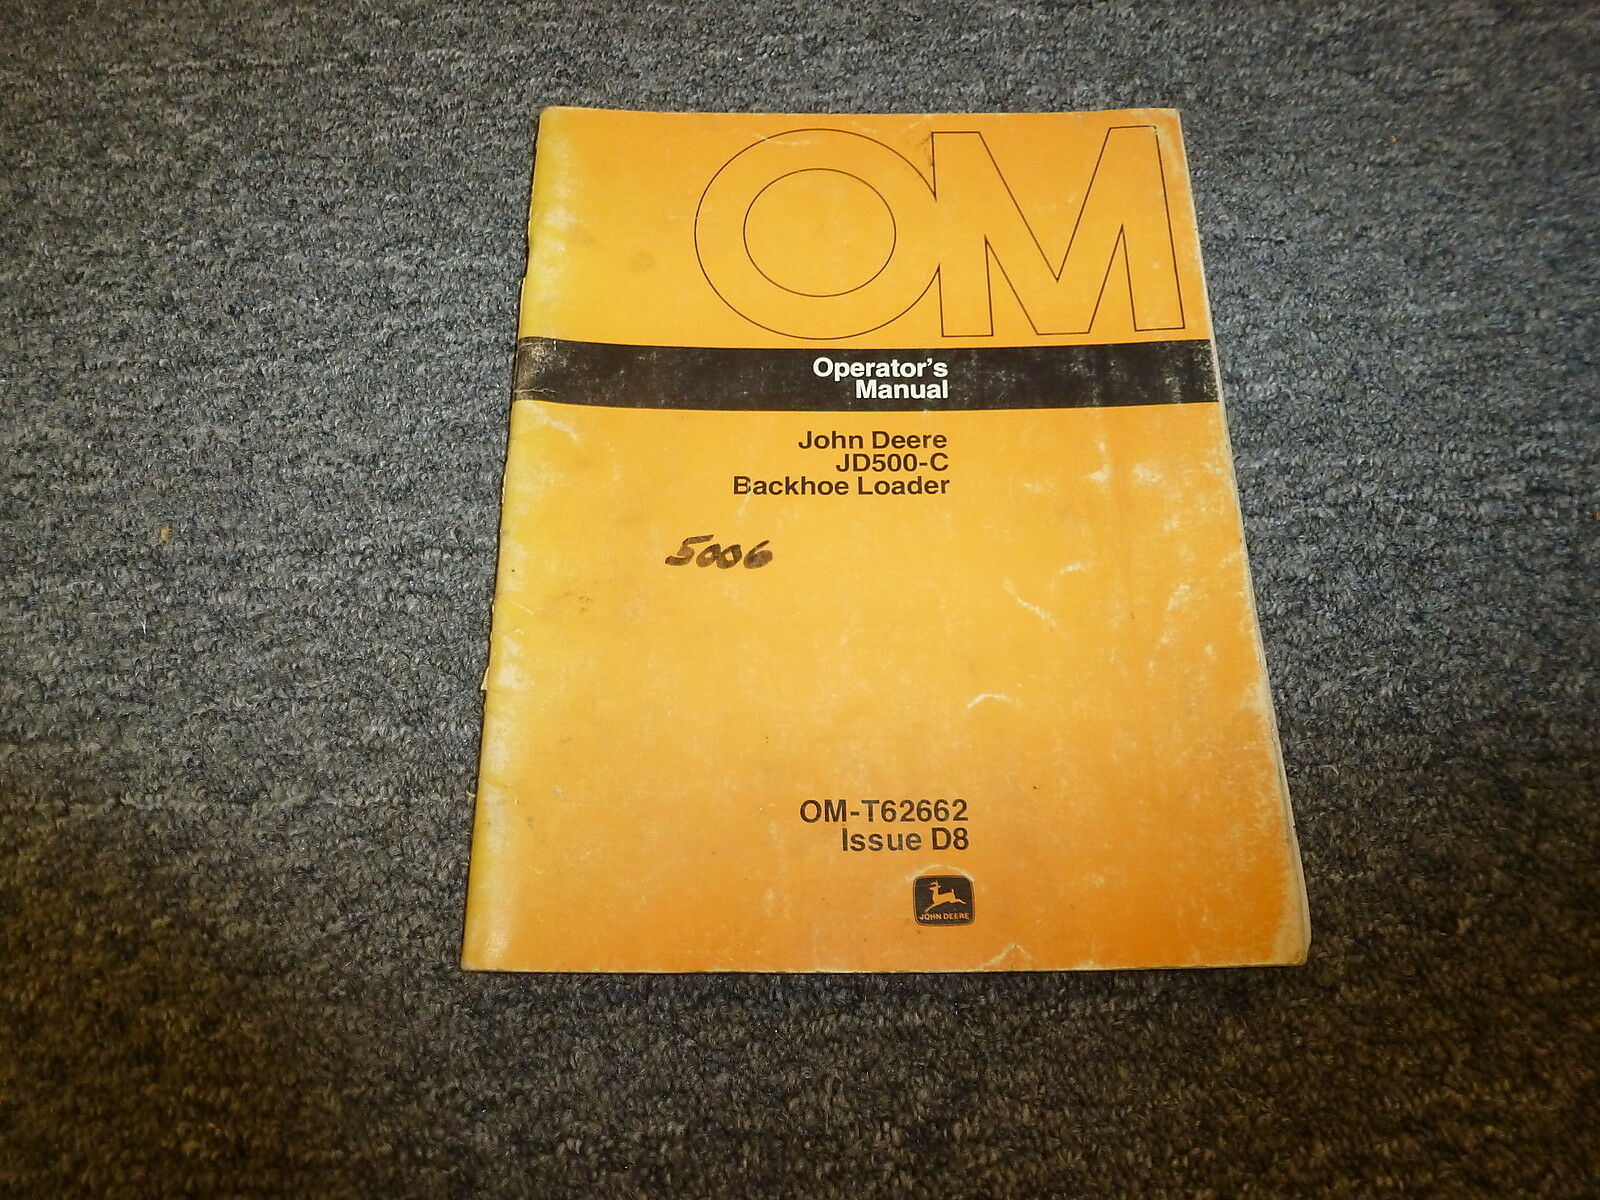 John Deere 500C Backhoe Loader Operator User Guide Manual OMT62662 1 of  1Only 1 available ...